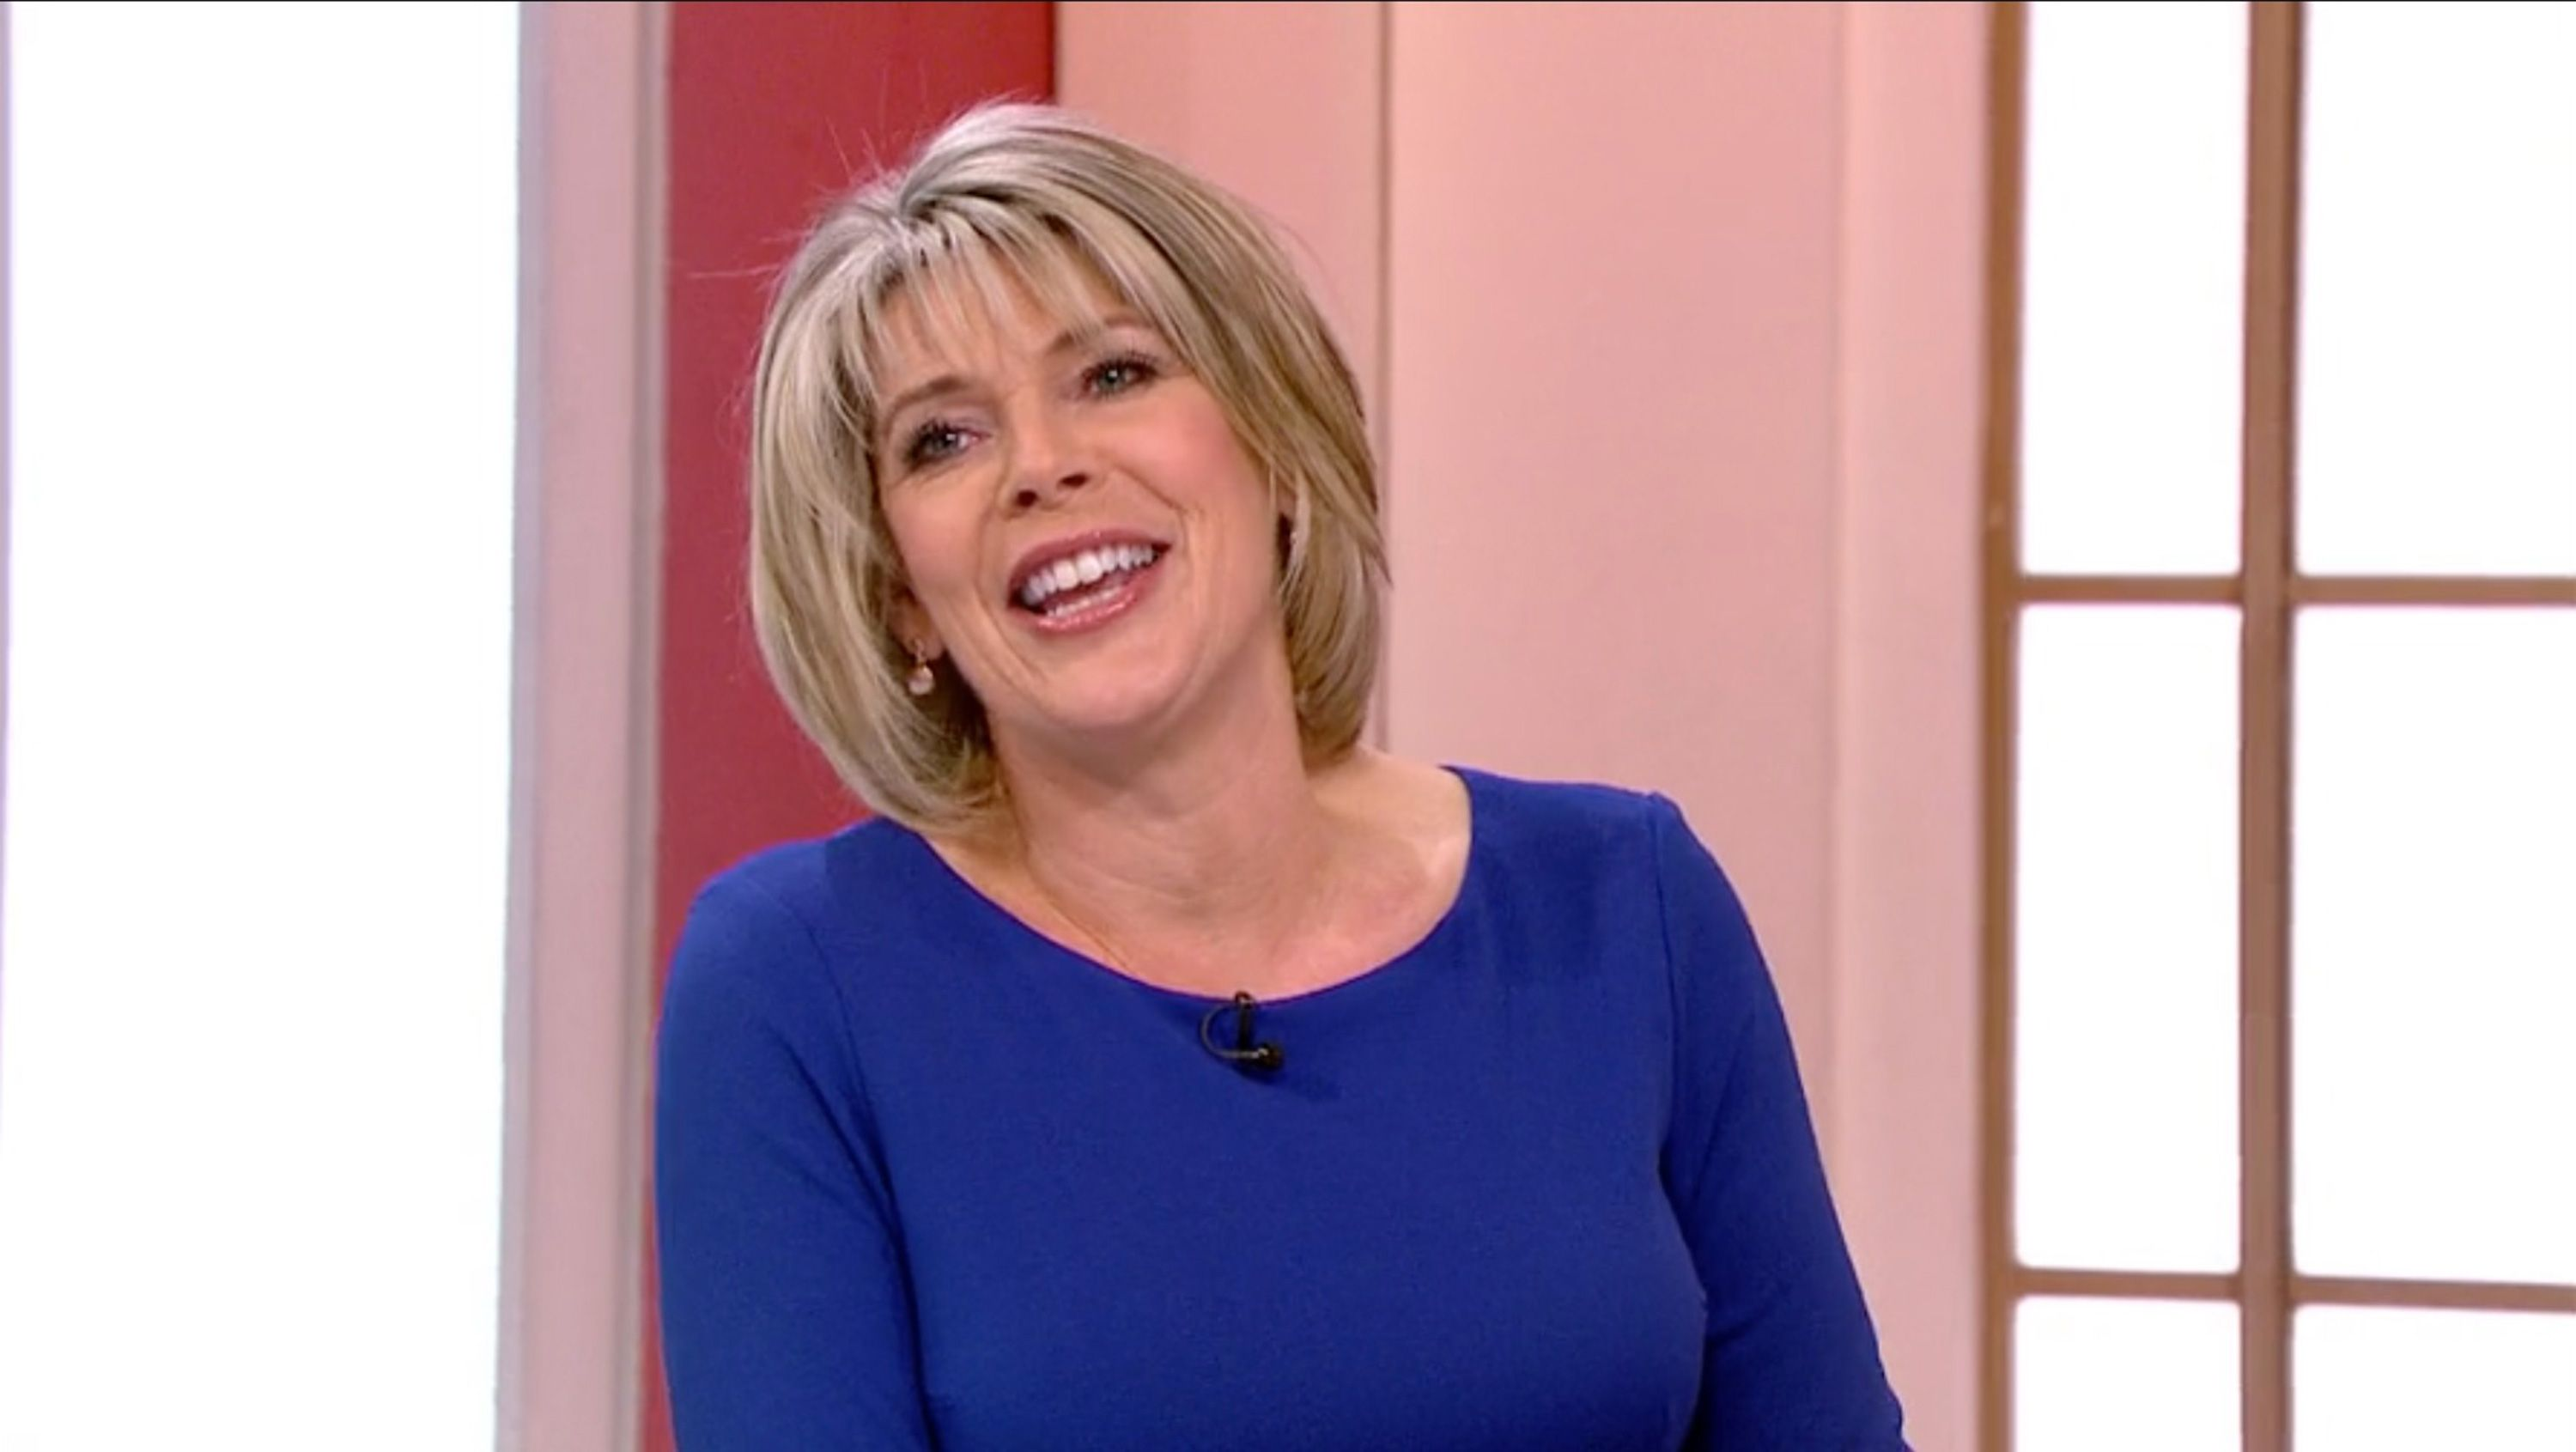 pictures The brilliant way Ruth Langsford celebrated her 58th birthday